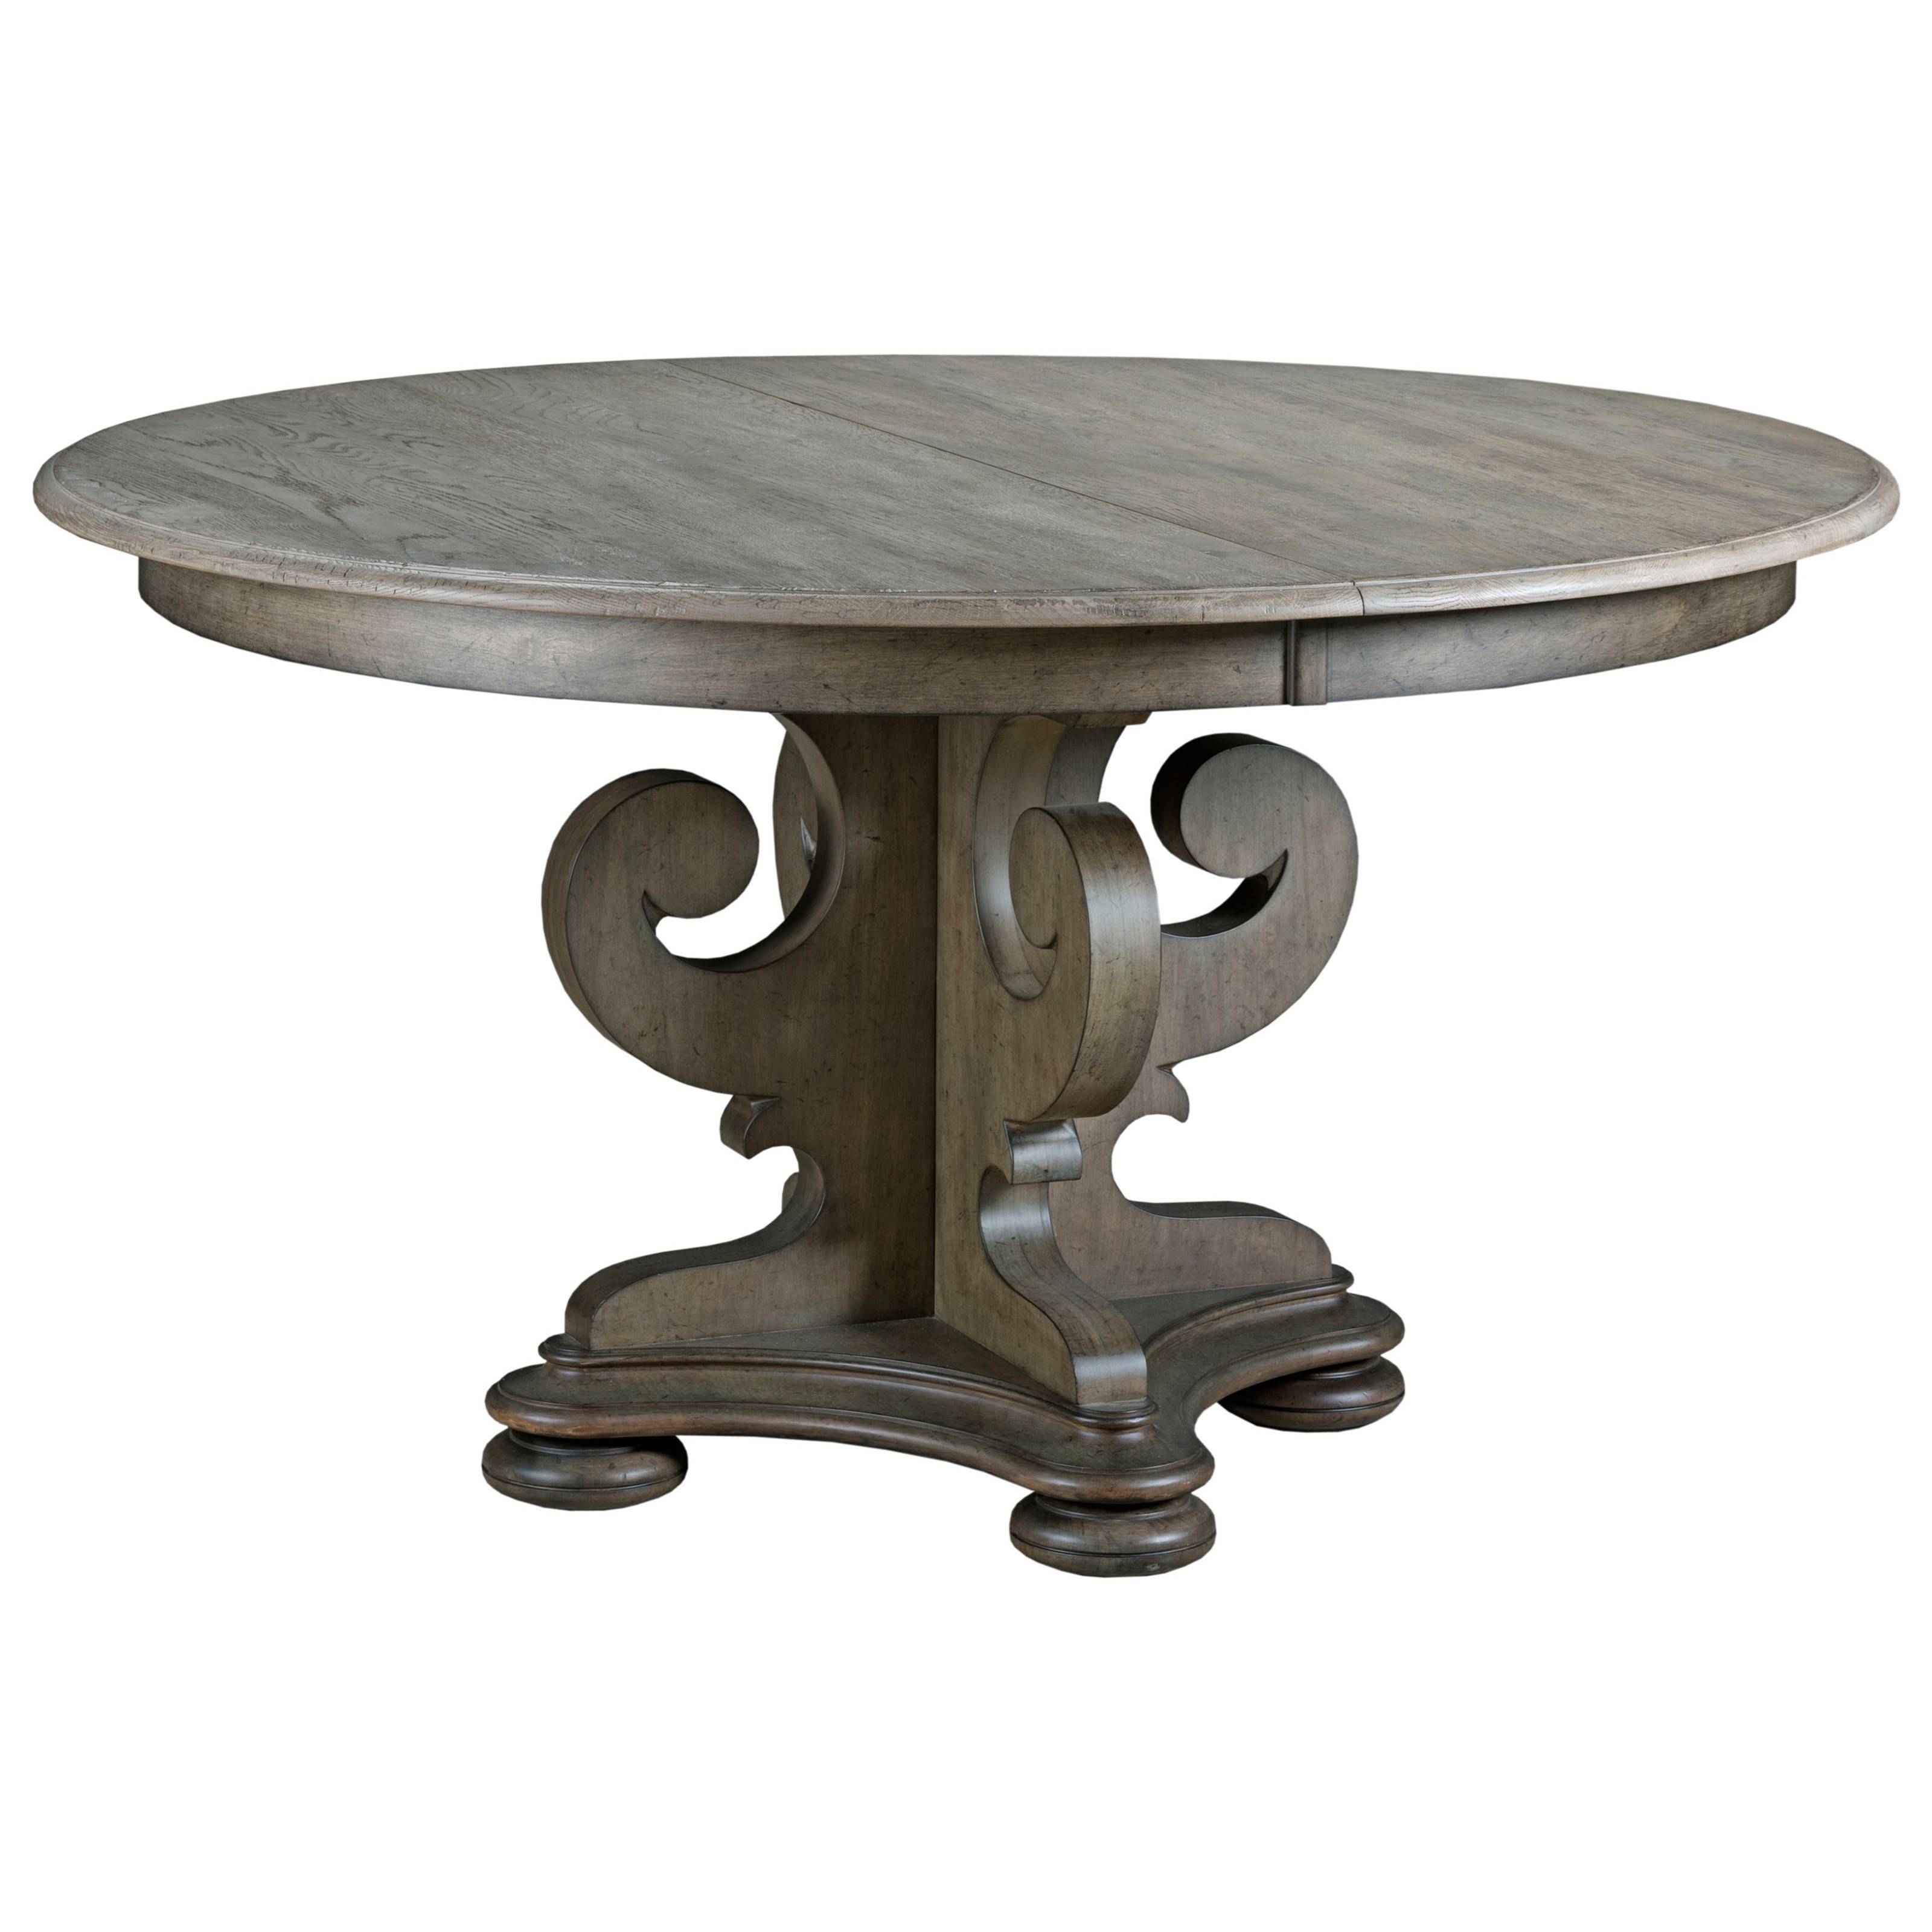 Kincaid Furniture Greyson 608 701p Grant Scrolled Pedestal